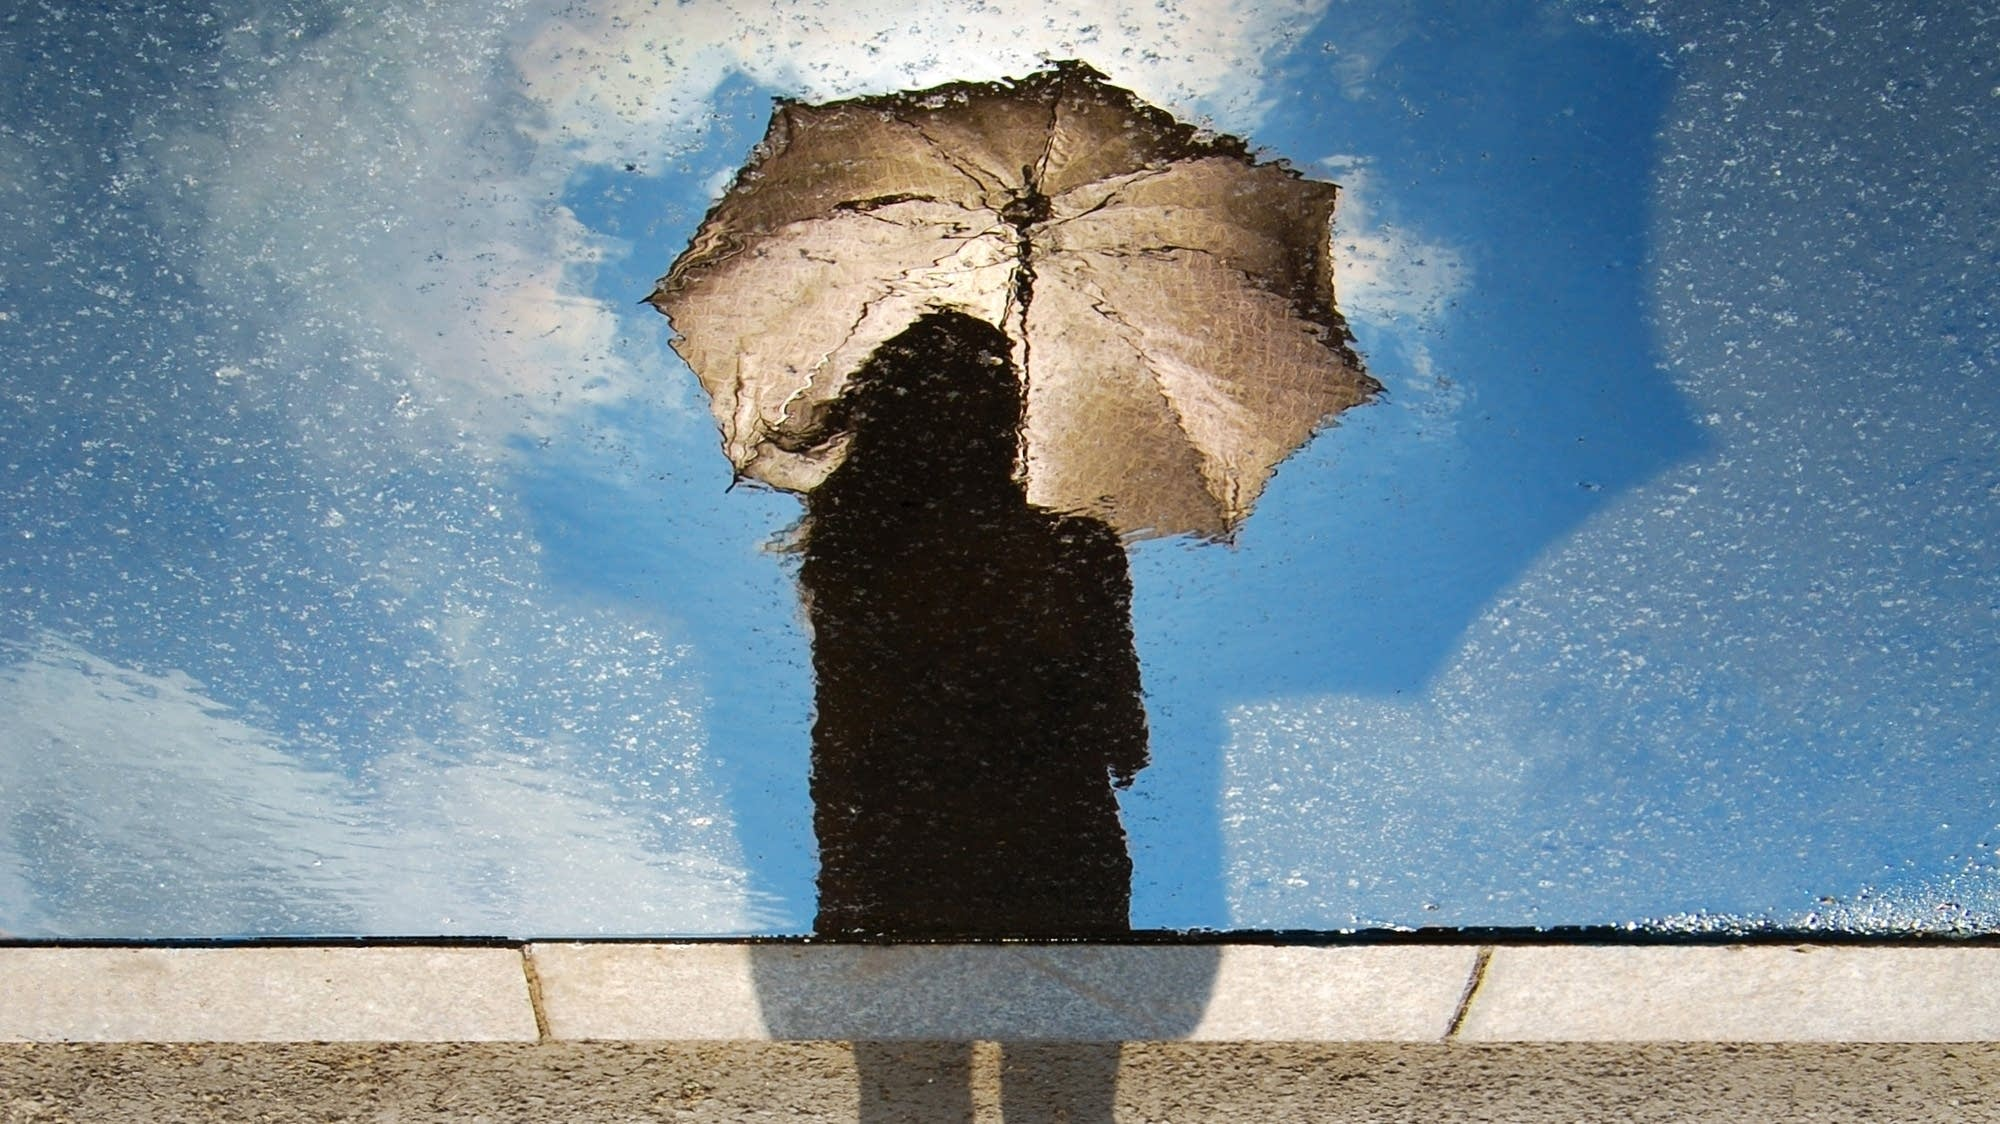 A reflection of a woman with an umbrella